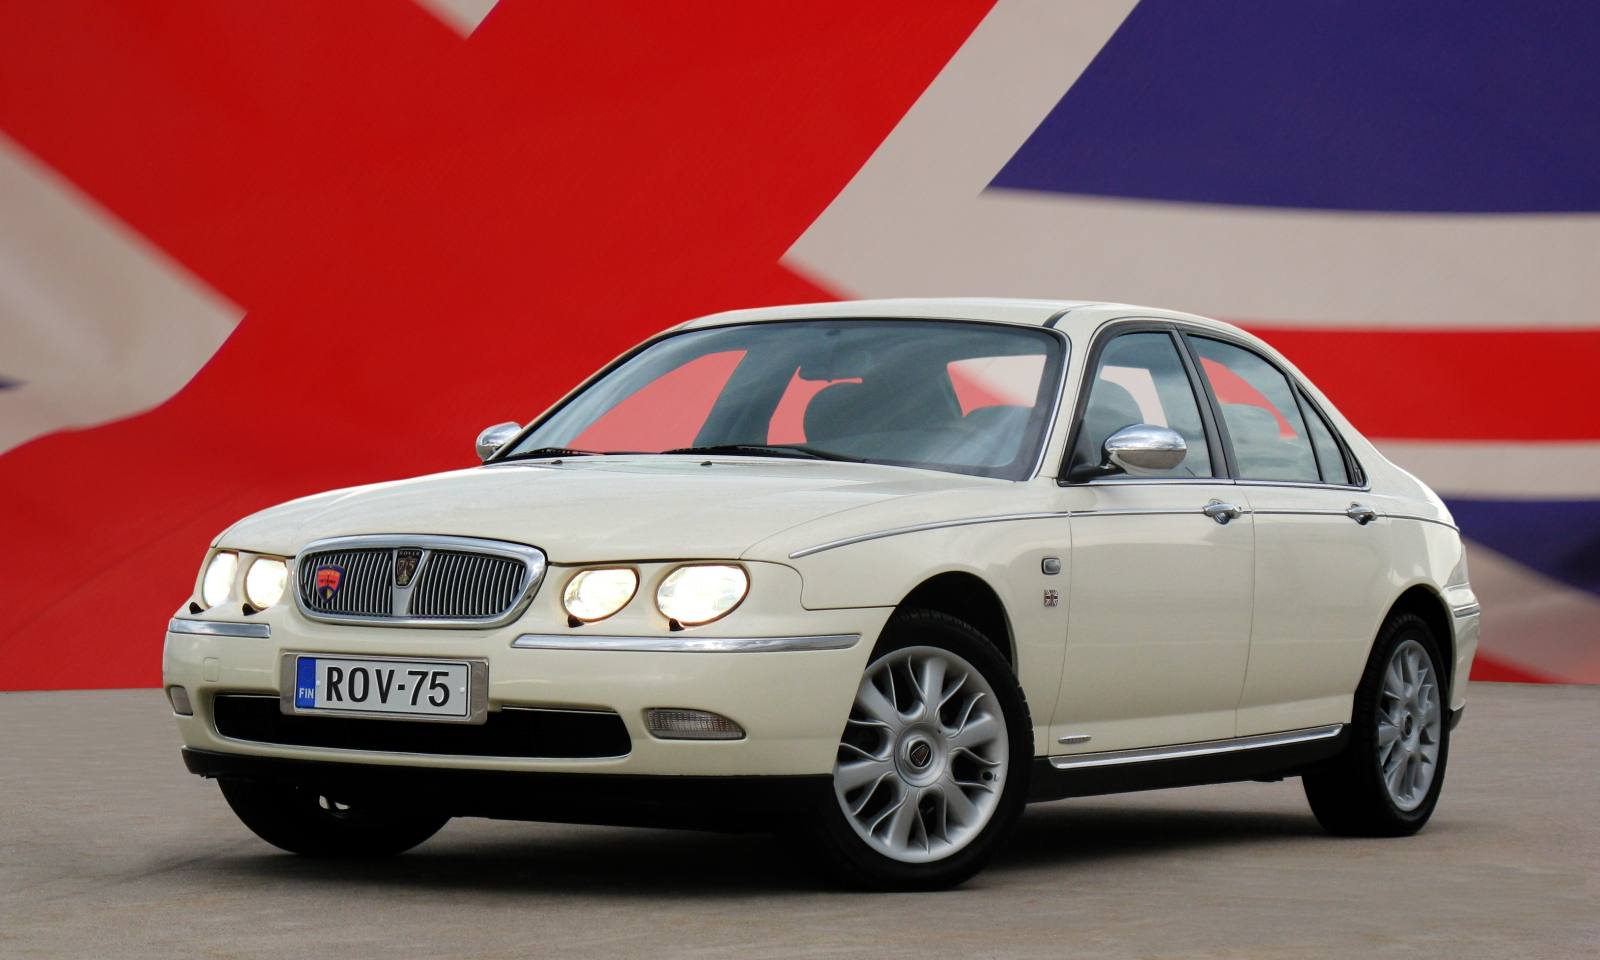 Rover 75 image #7